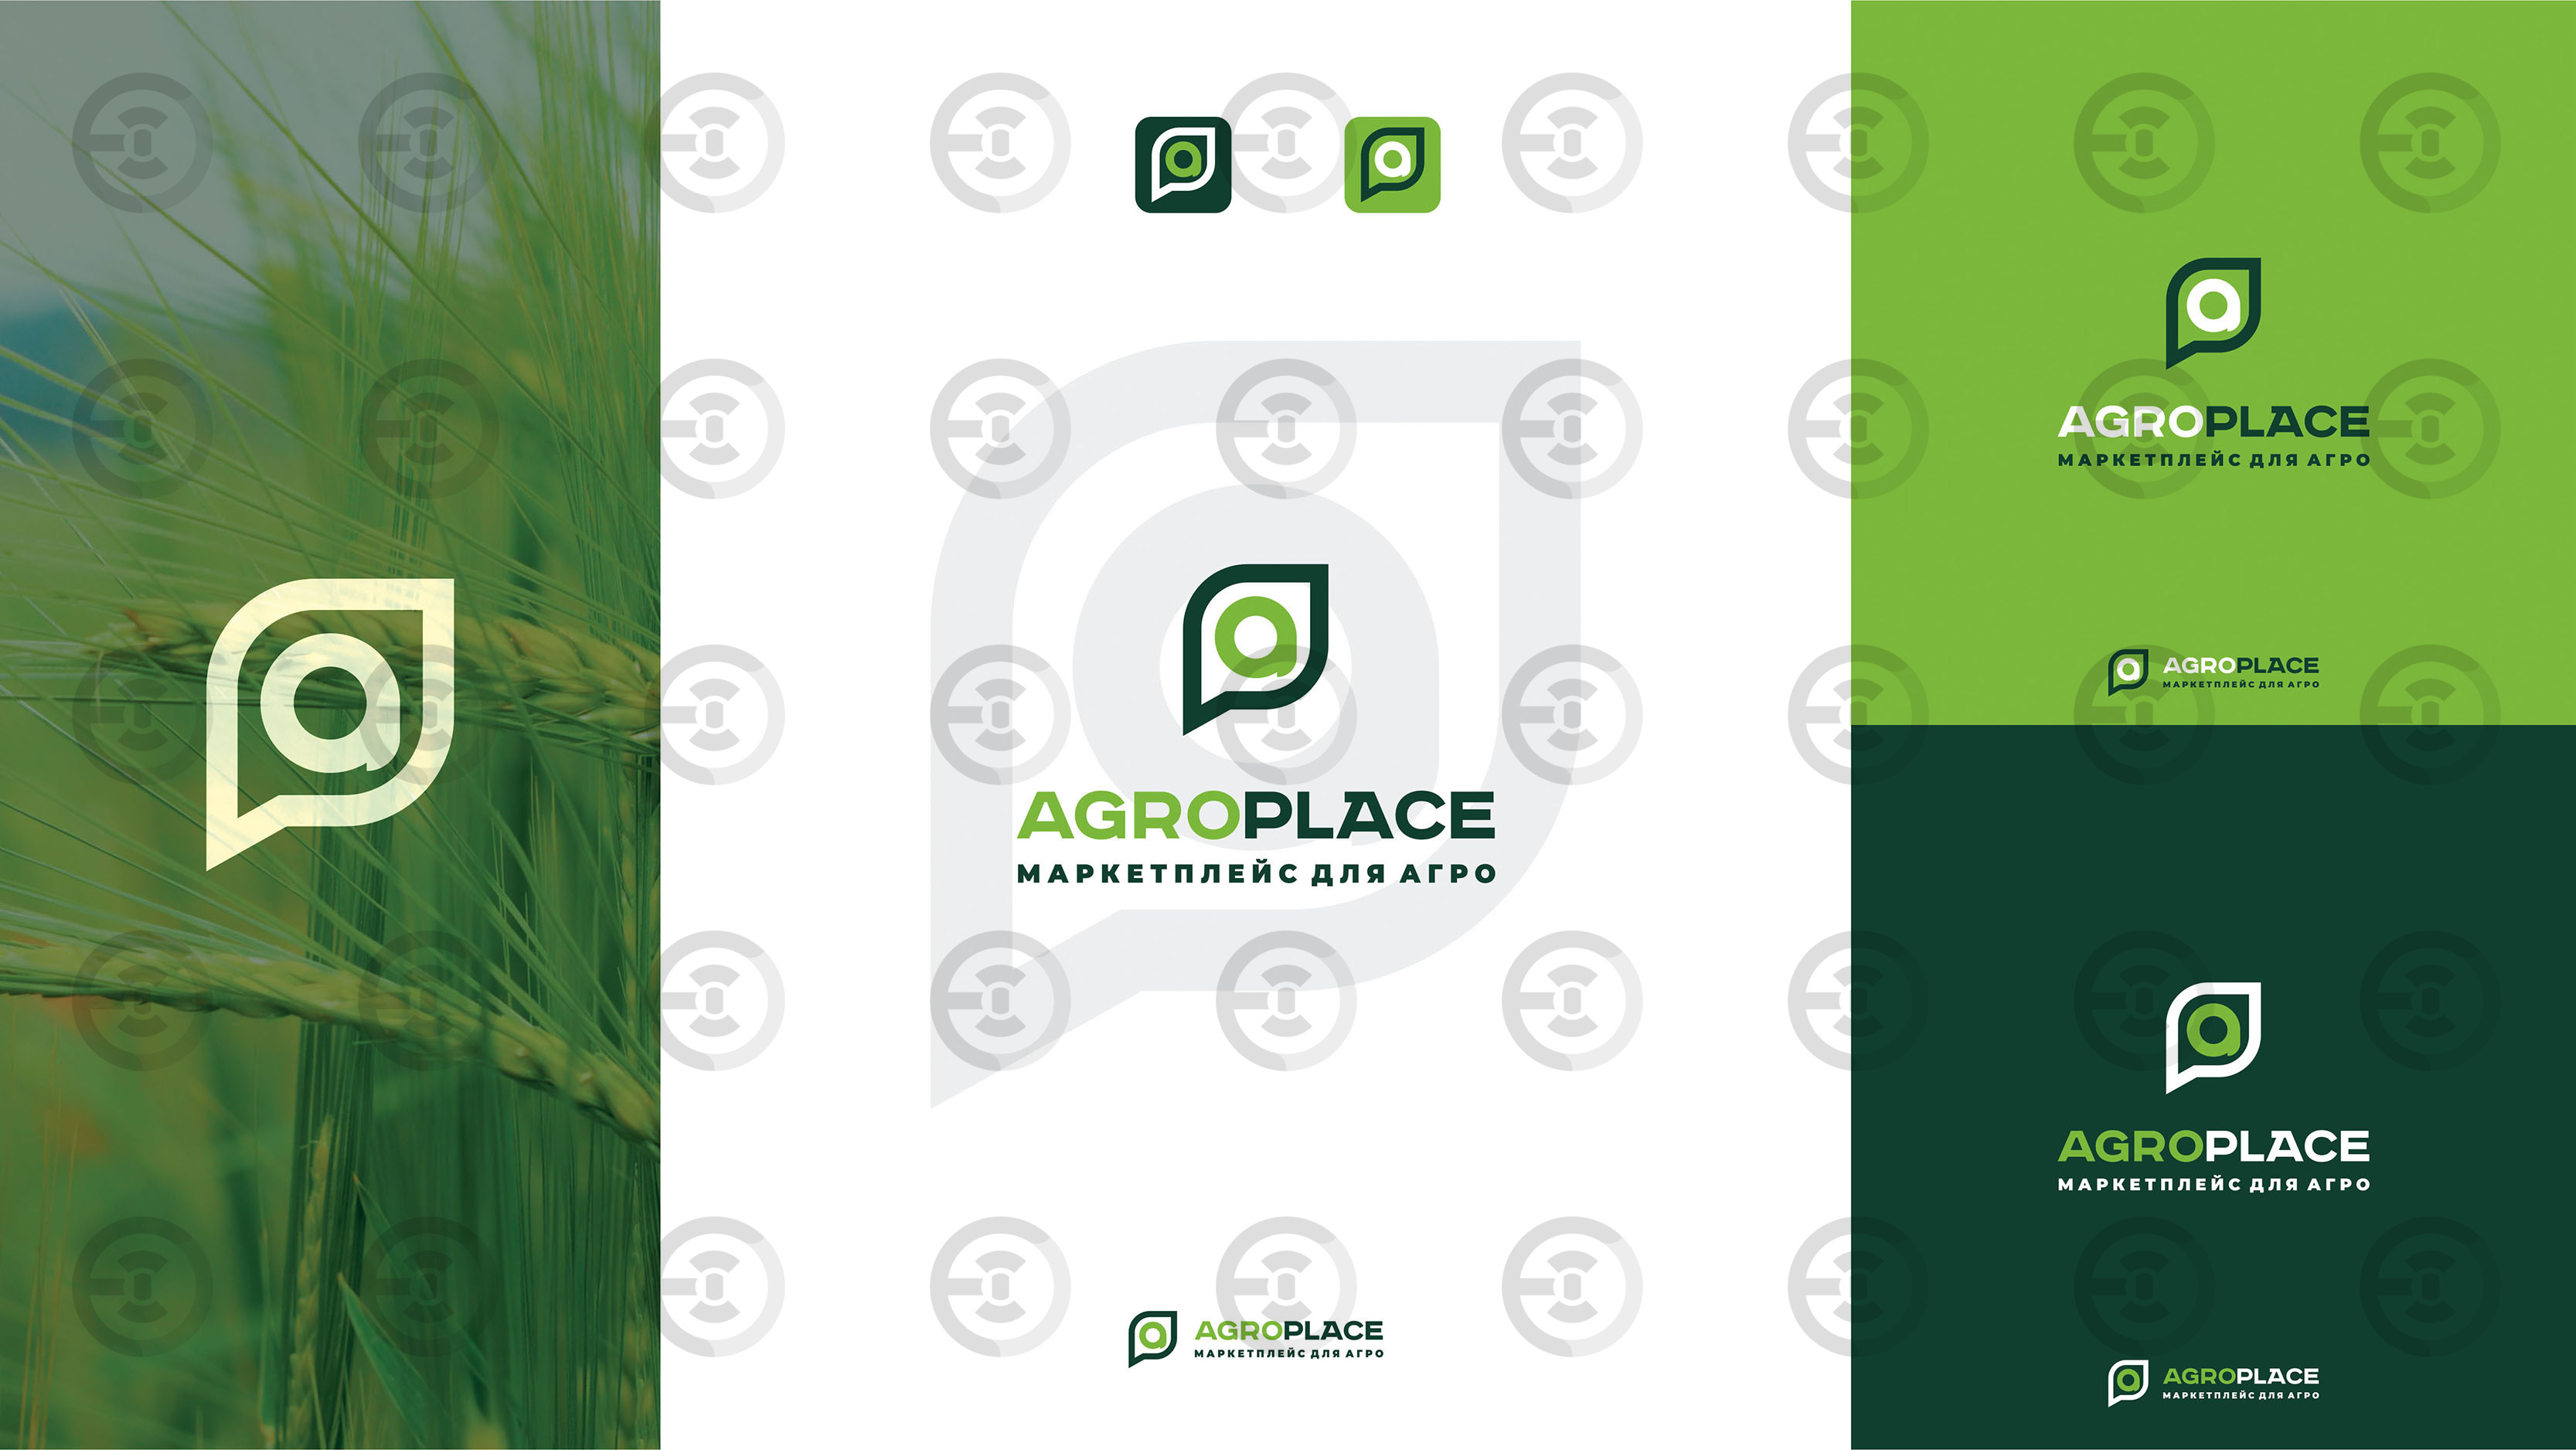 AgroPlace.jpg